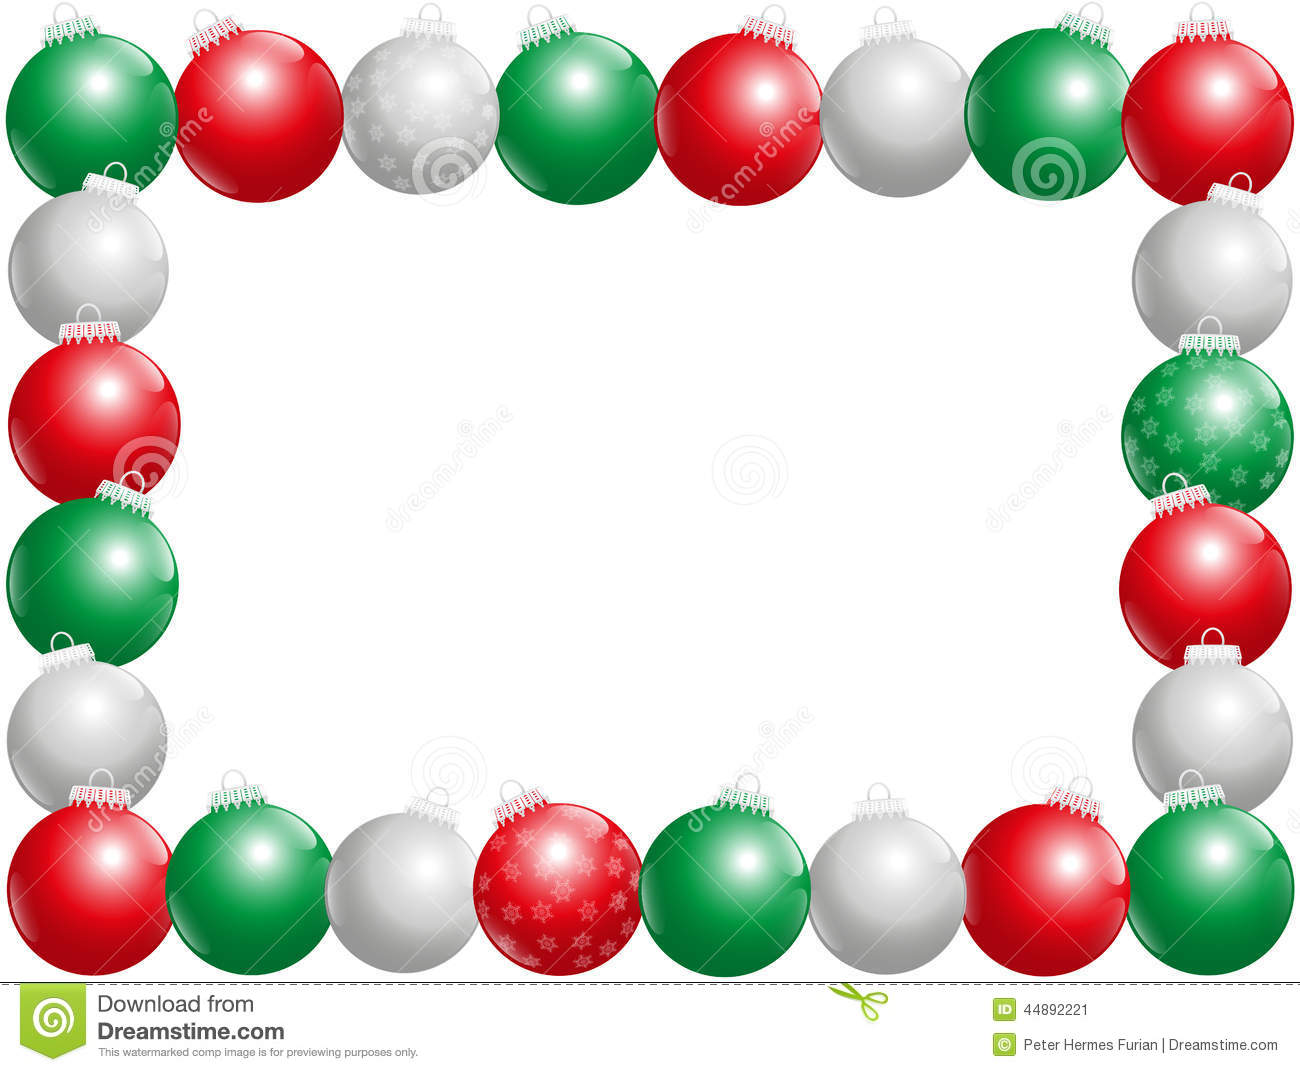 Christmas balls frame horizontal stock illustration